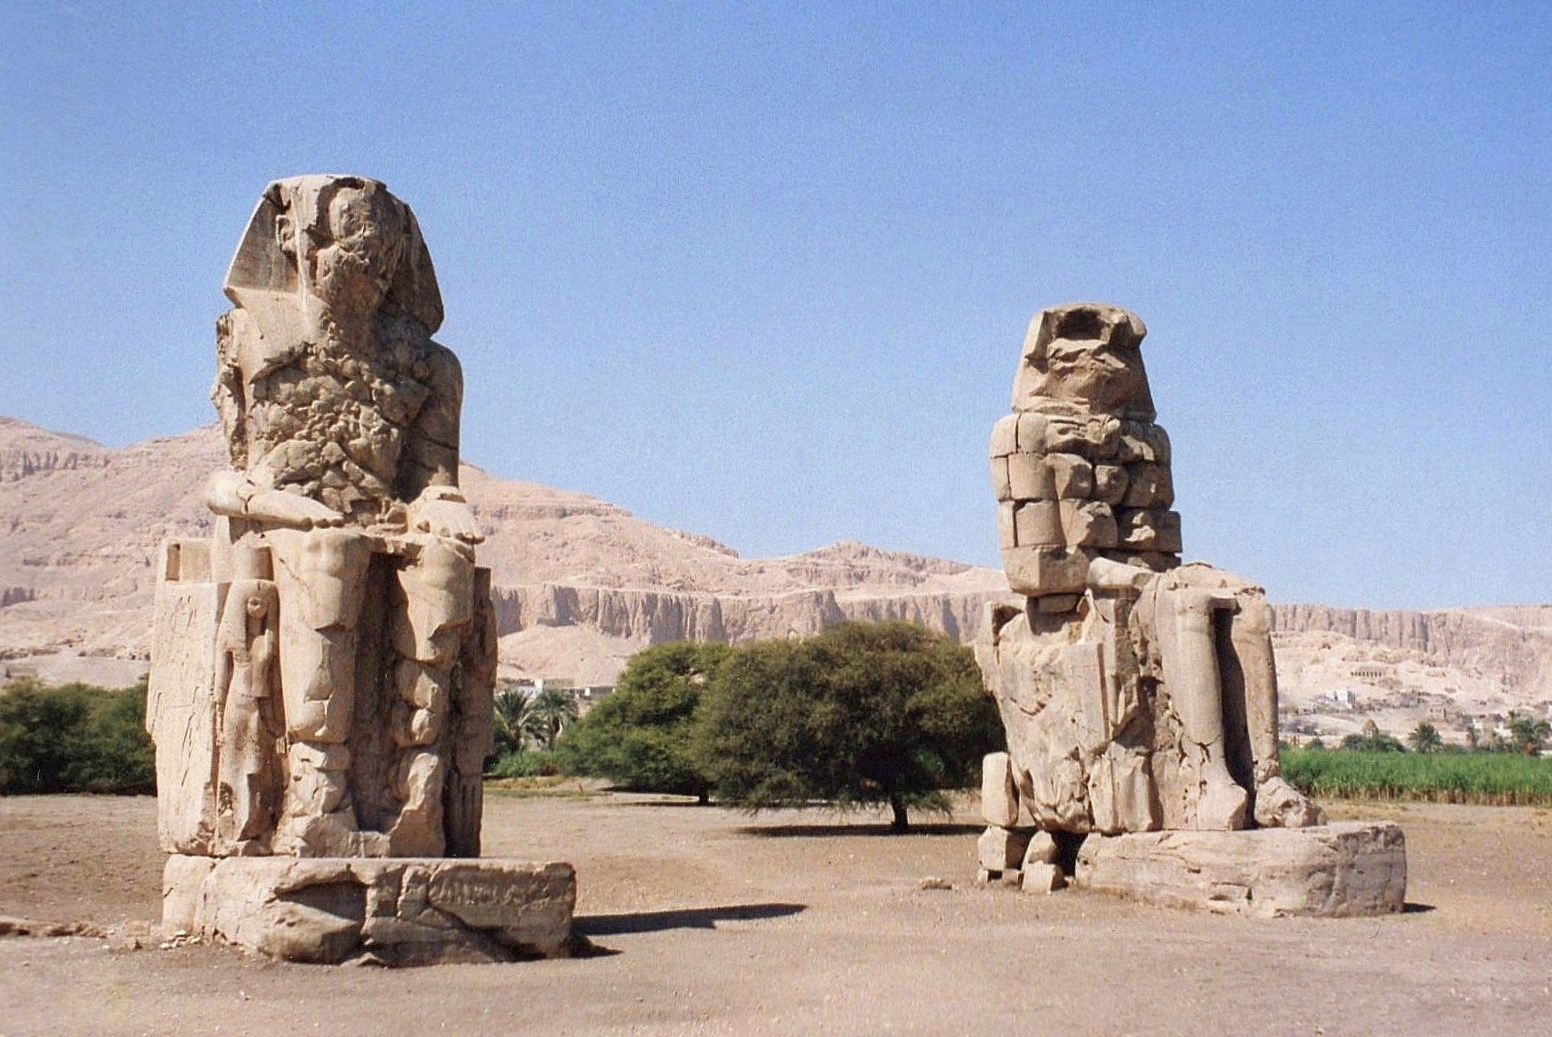 The Colossi of Memnon stood as they do today, in a clearing surrounded by fields. But there were no barriers of any kind — you could climb the statues if agile enough